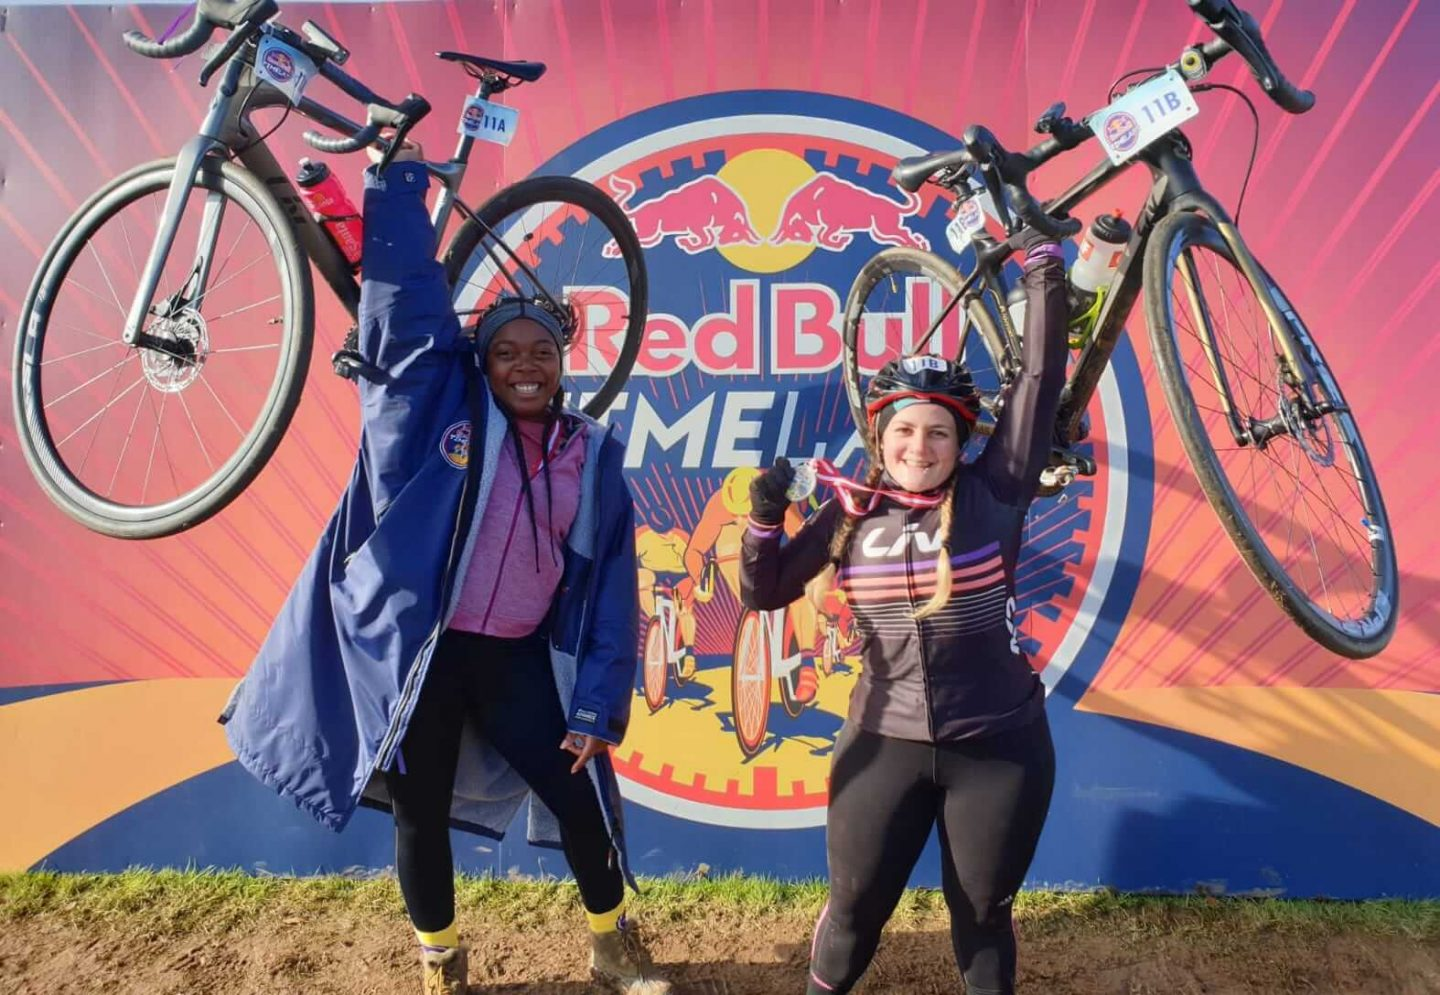 Redbull Timelaps teammates Tess Agnew and Elle Linton